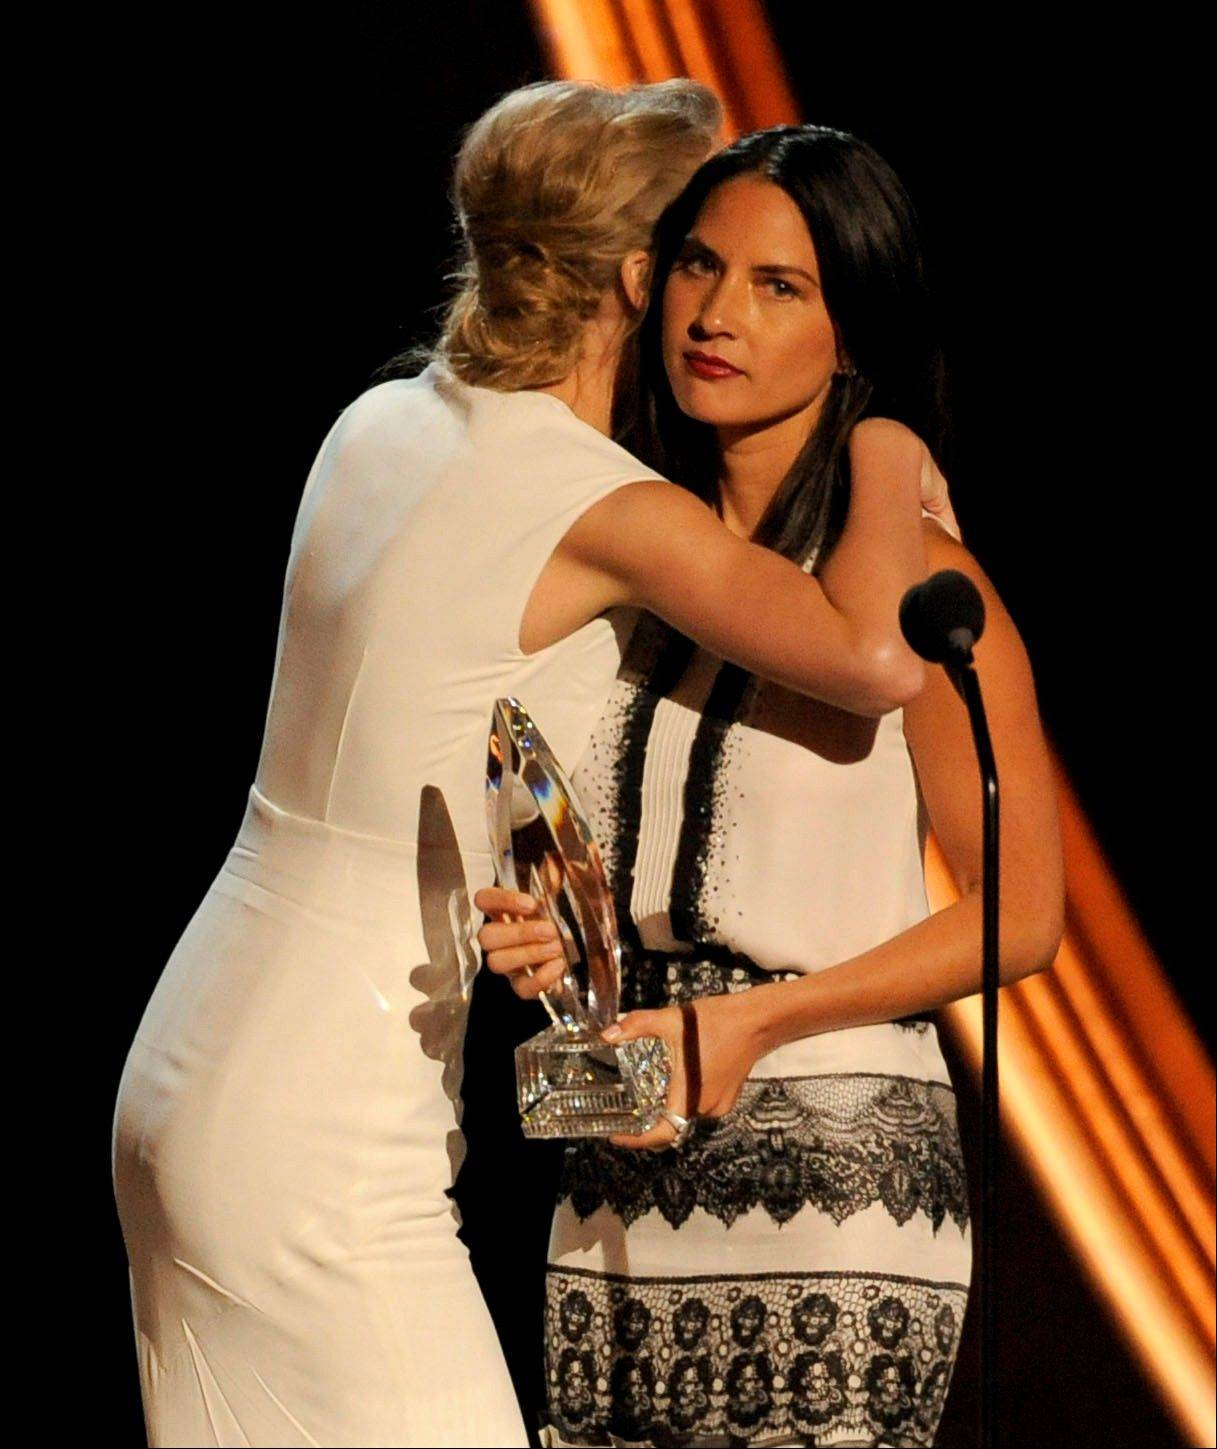 Taylor Swift, left, hugs presenter Olivia Munn before accepting the award for favorite country artist at the People's Choice Awards at the Nokia Theatre on Wednesday Jan. 9, 2013, in Los Angeles.